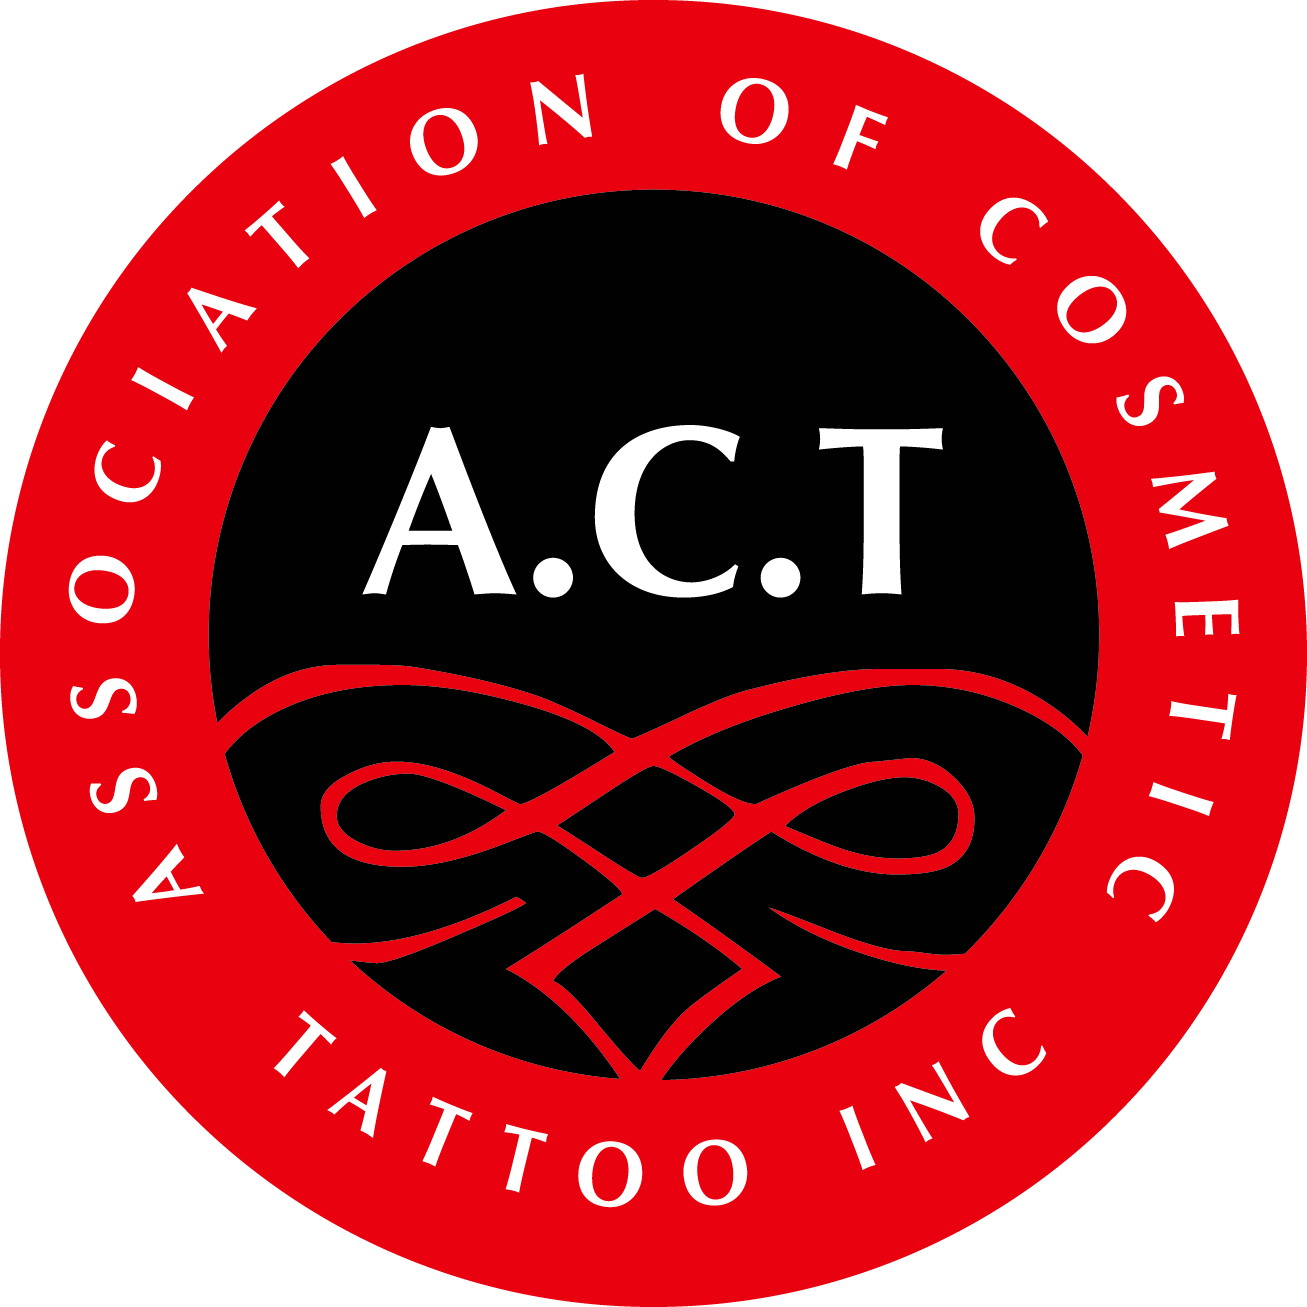 Association of cosmetic tattoo